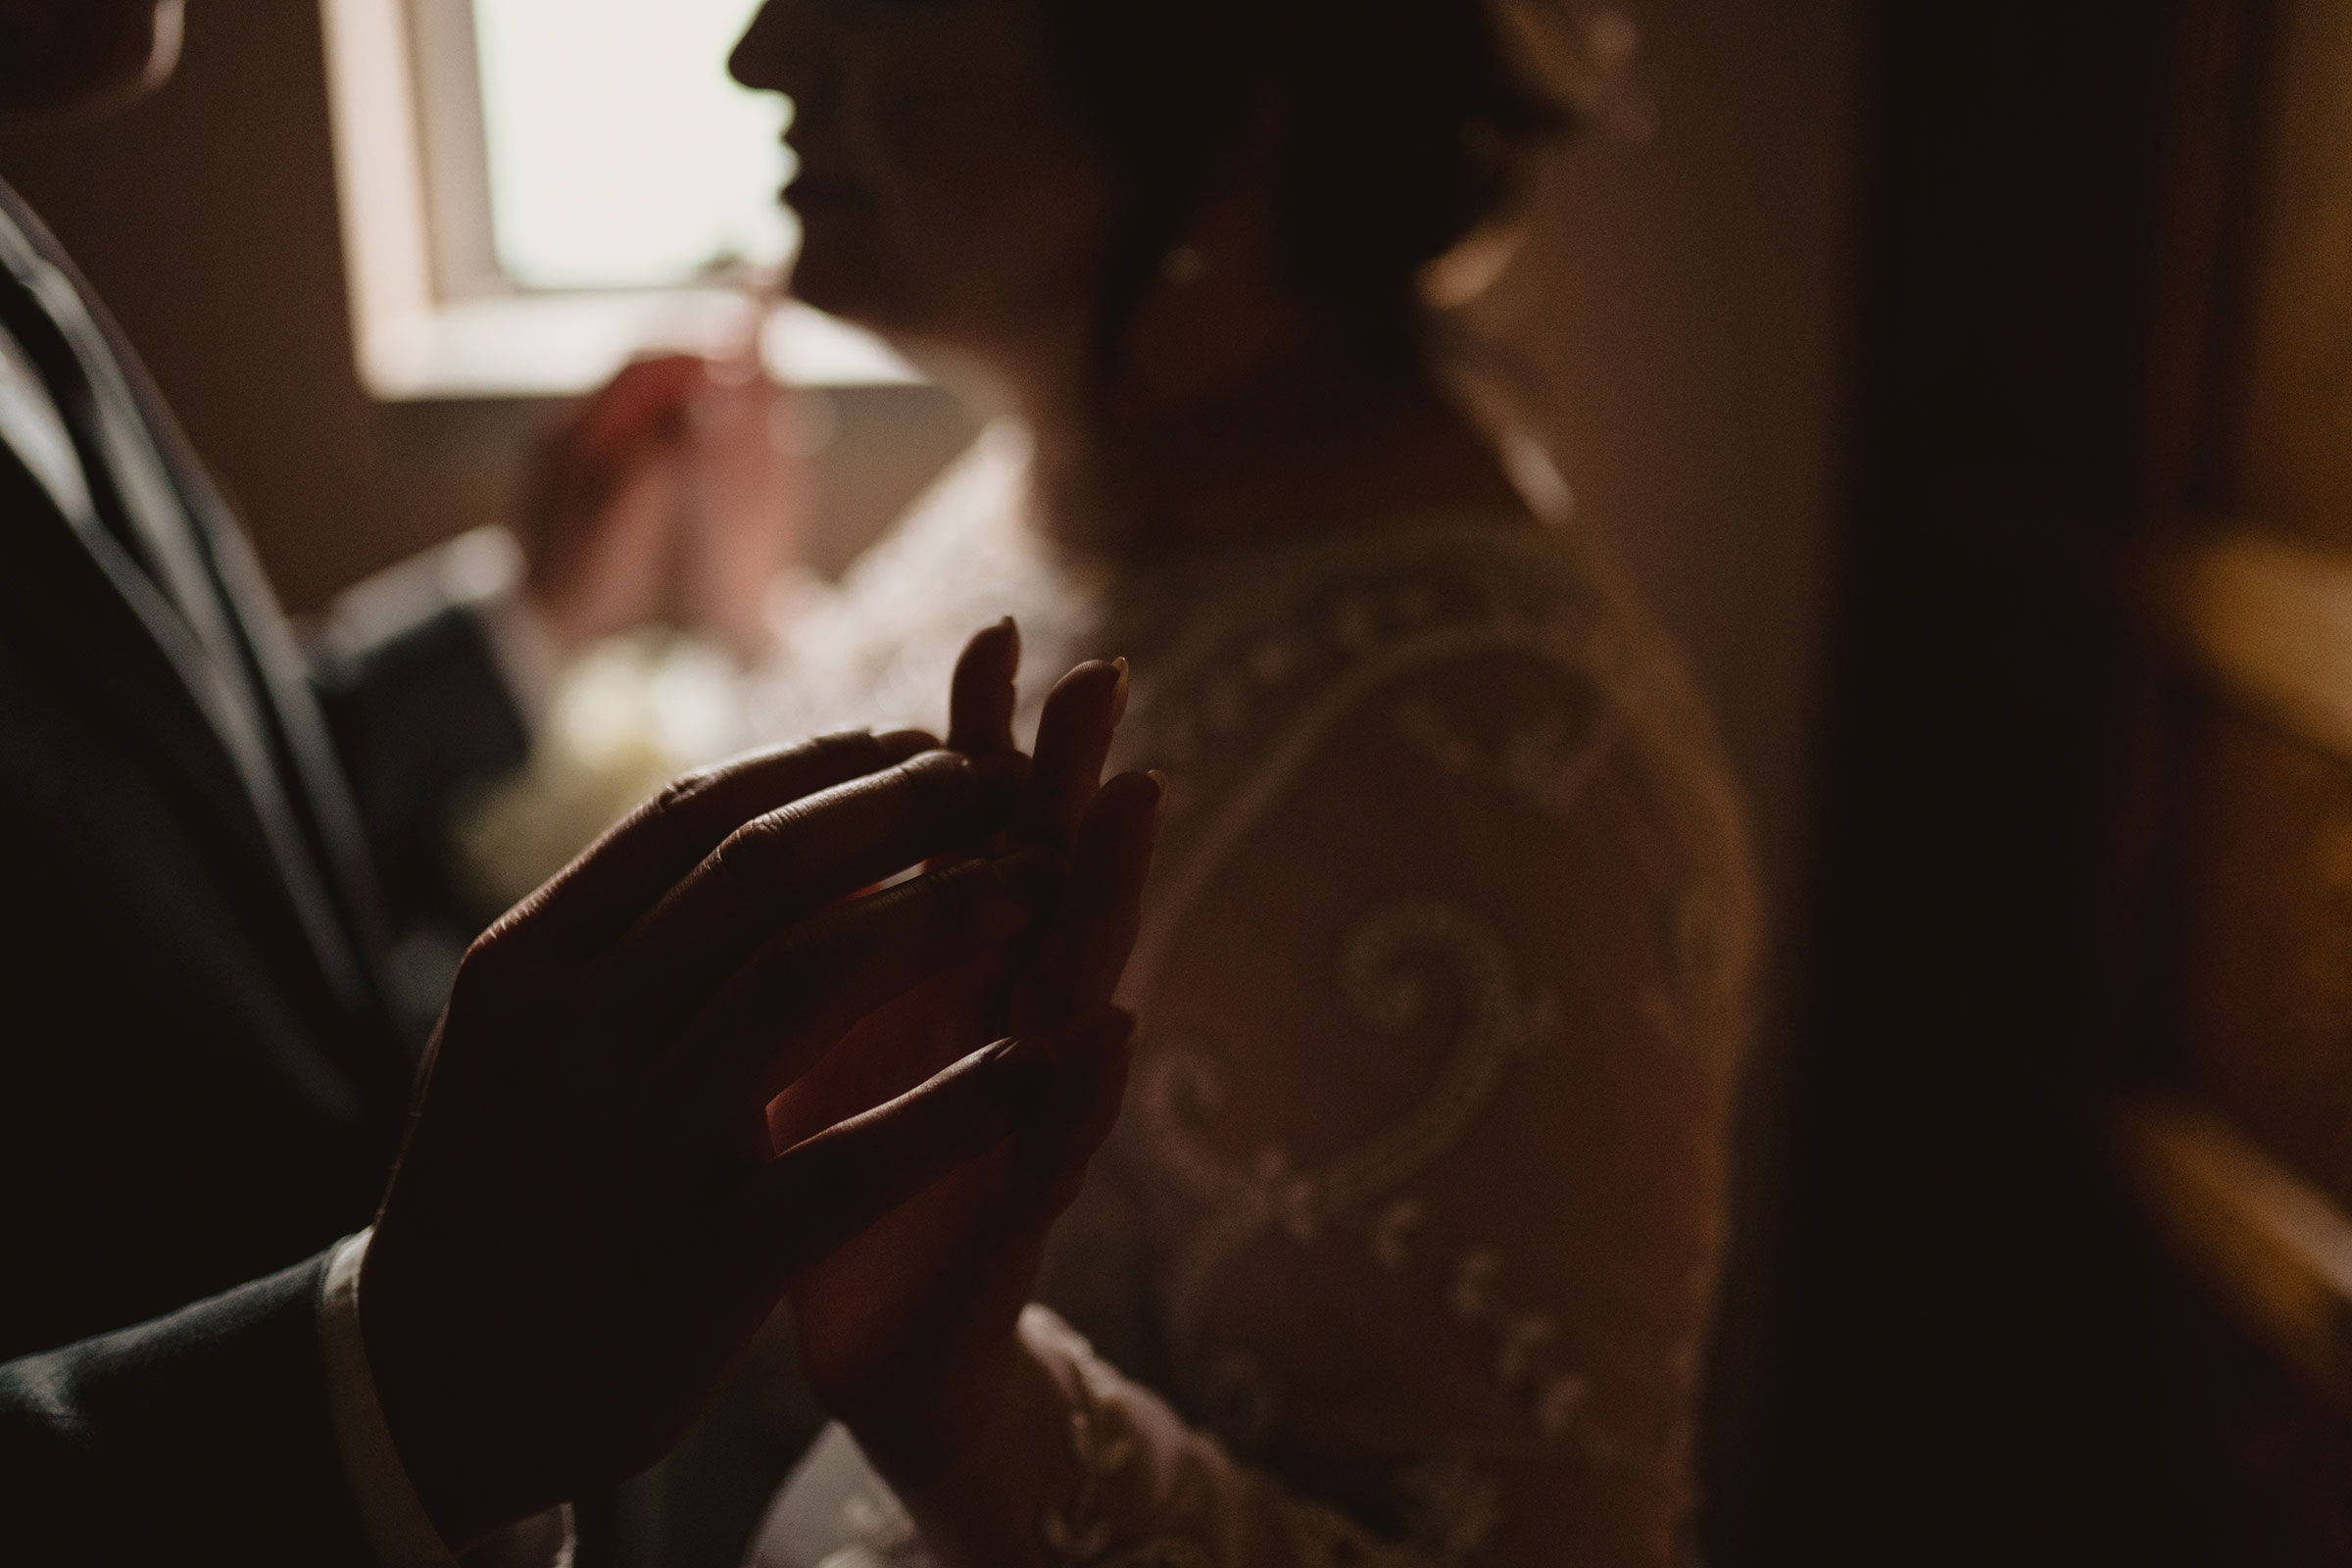 detail-shot-of-bride-groom-hands-touching-wedding-salisbury-house-desmoines-iowa-raelyn-ramey-photography.jpg